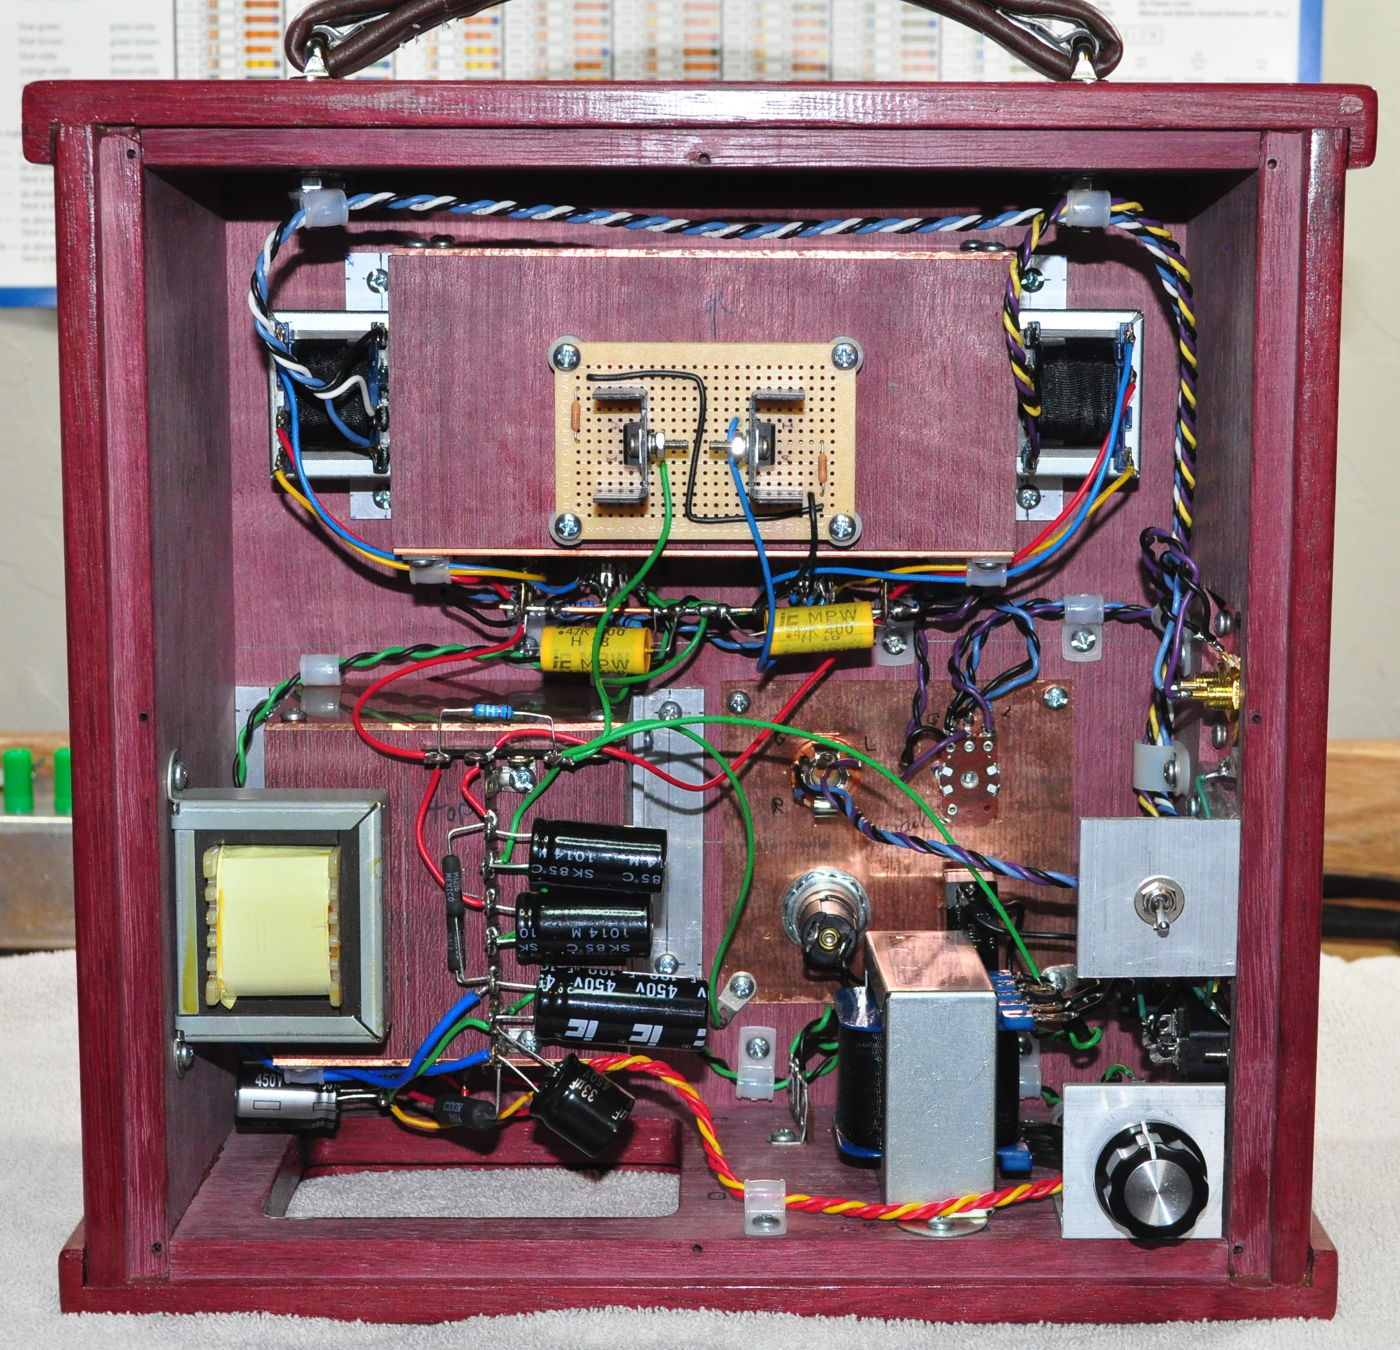 Neat Amp Tube Wiring Electrical Diagrams The Fu29 Pushpull Circuit Amplifiercircuit Diagram 6dj8 Headphone Cascade Tubes Simple Schematic Here Main Power Transformer Are